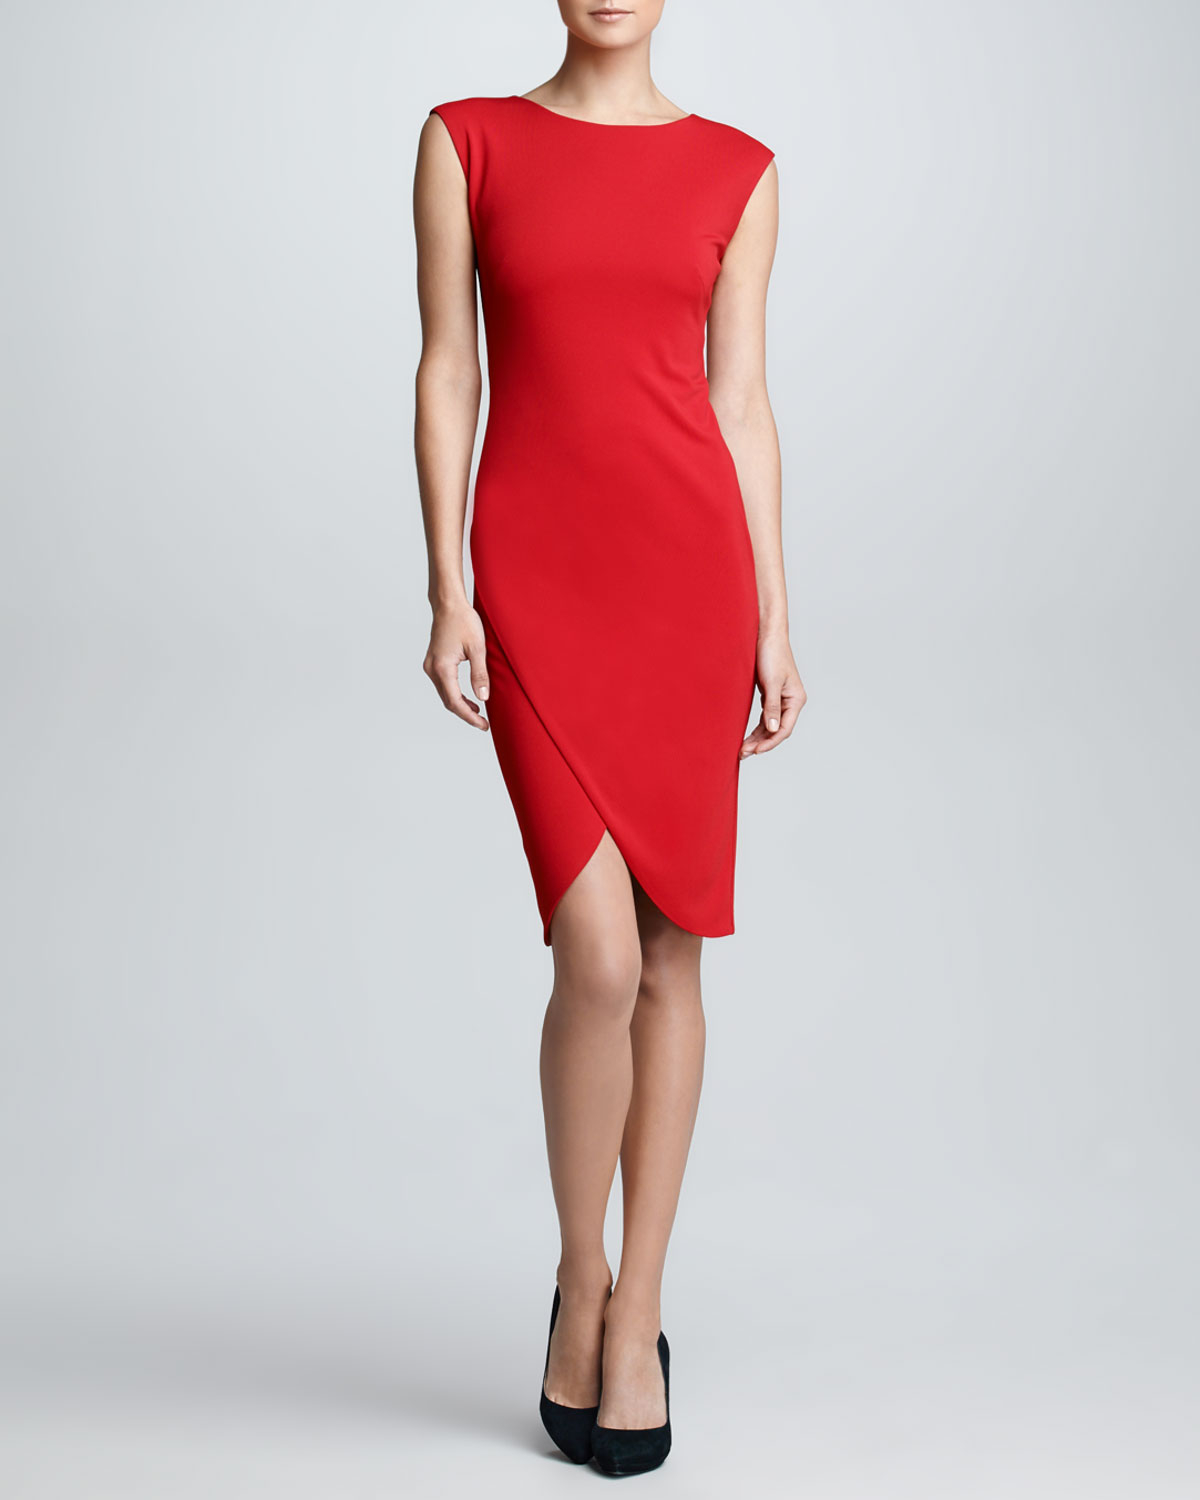 1a2f92160f Ralph Lauren Black Label Capsleeve Envelope Dress Rouge in Red - Lyst